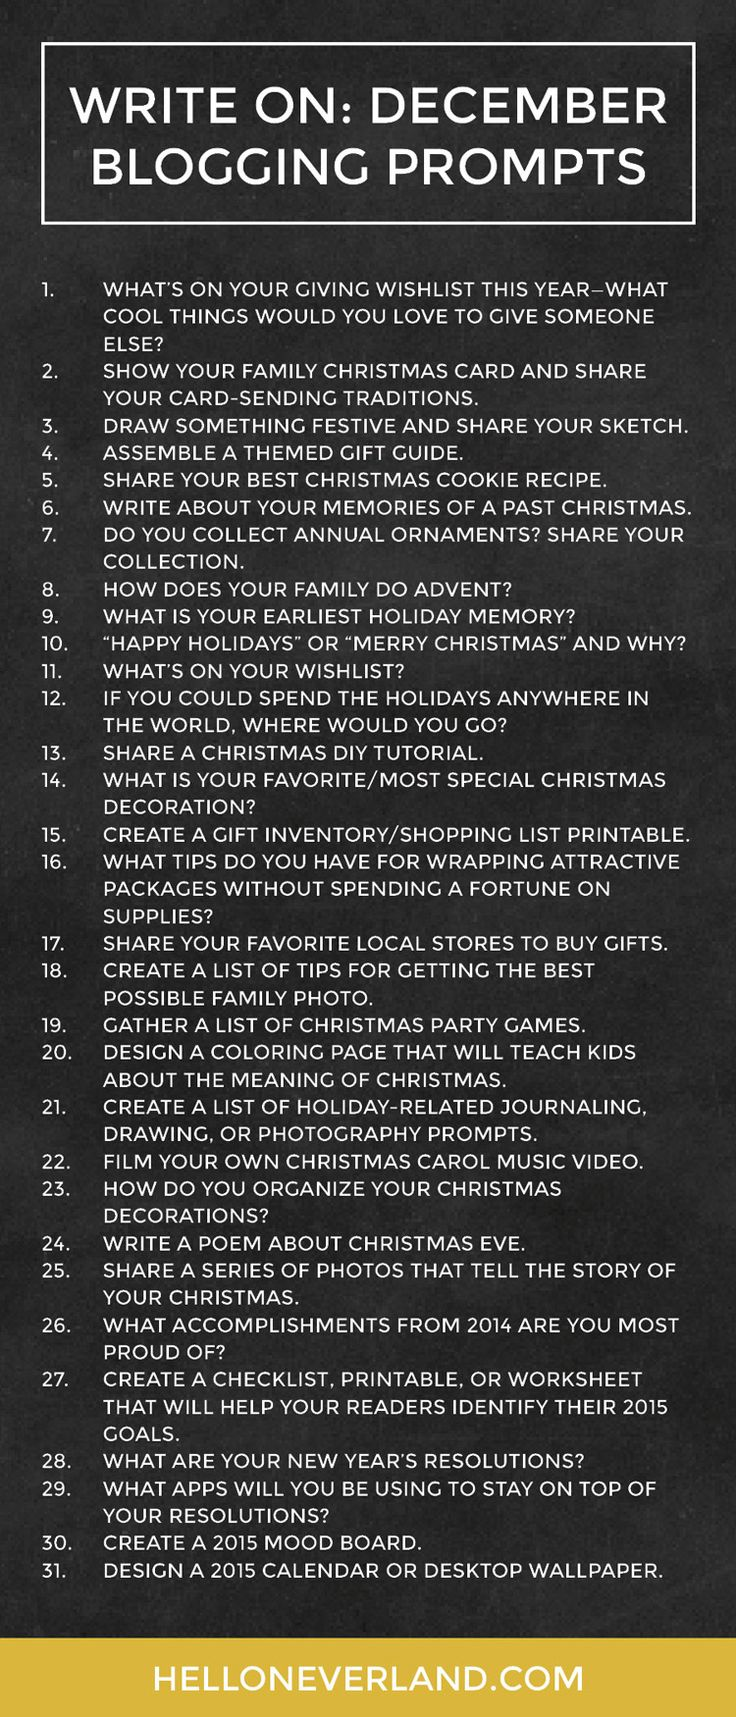 Happy December, y'all! This is the last month that there will be a complete list of prompts...